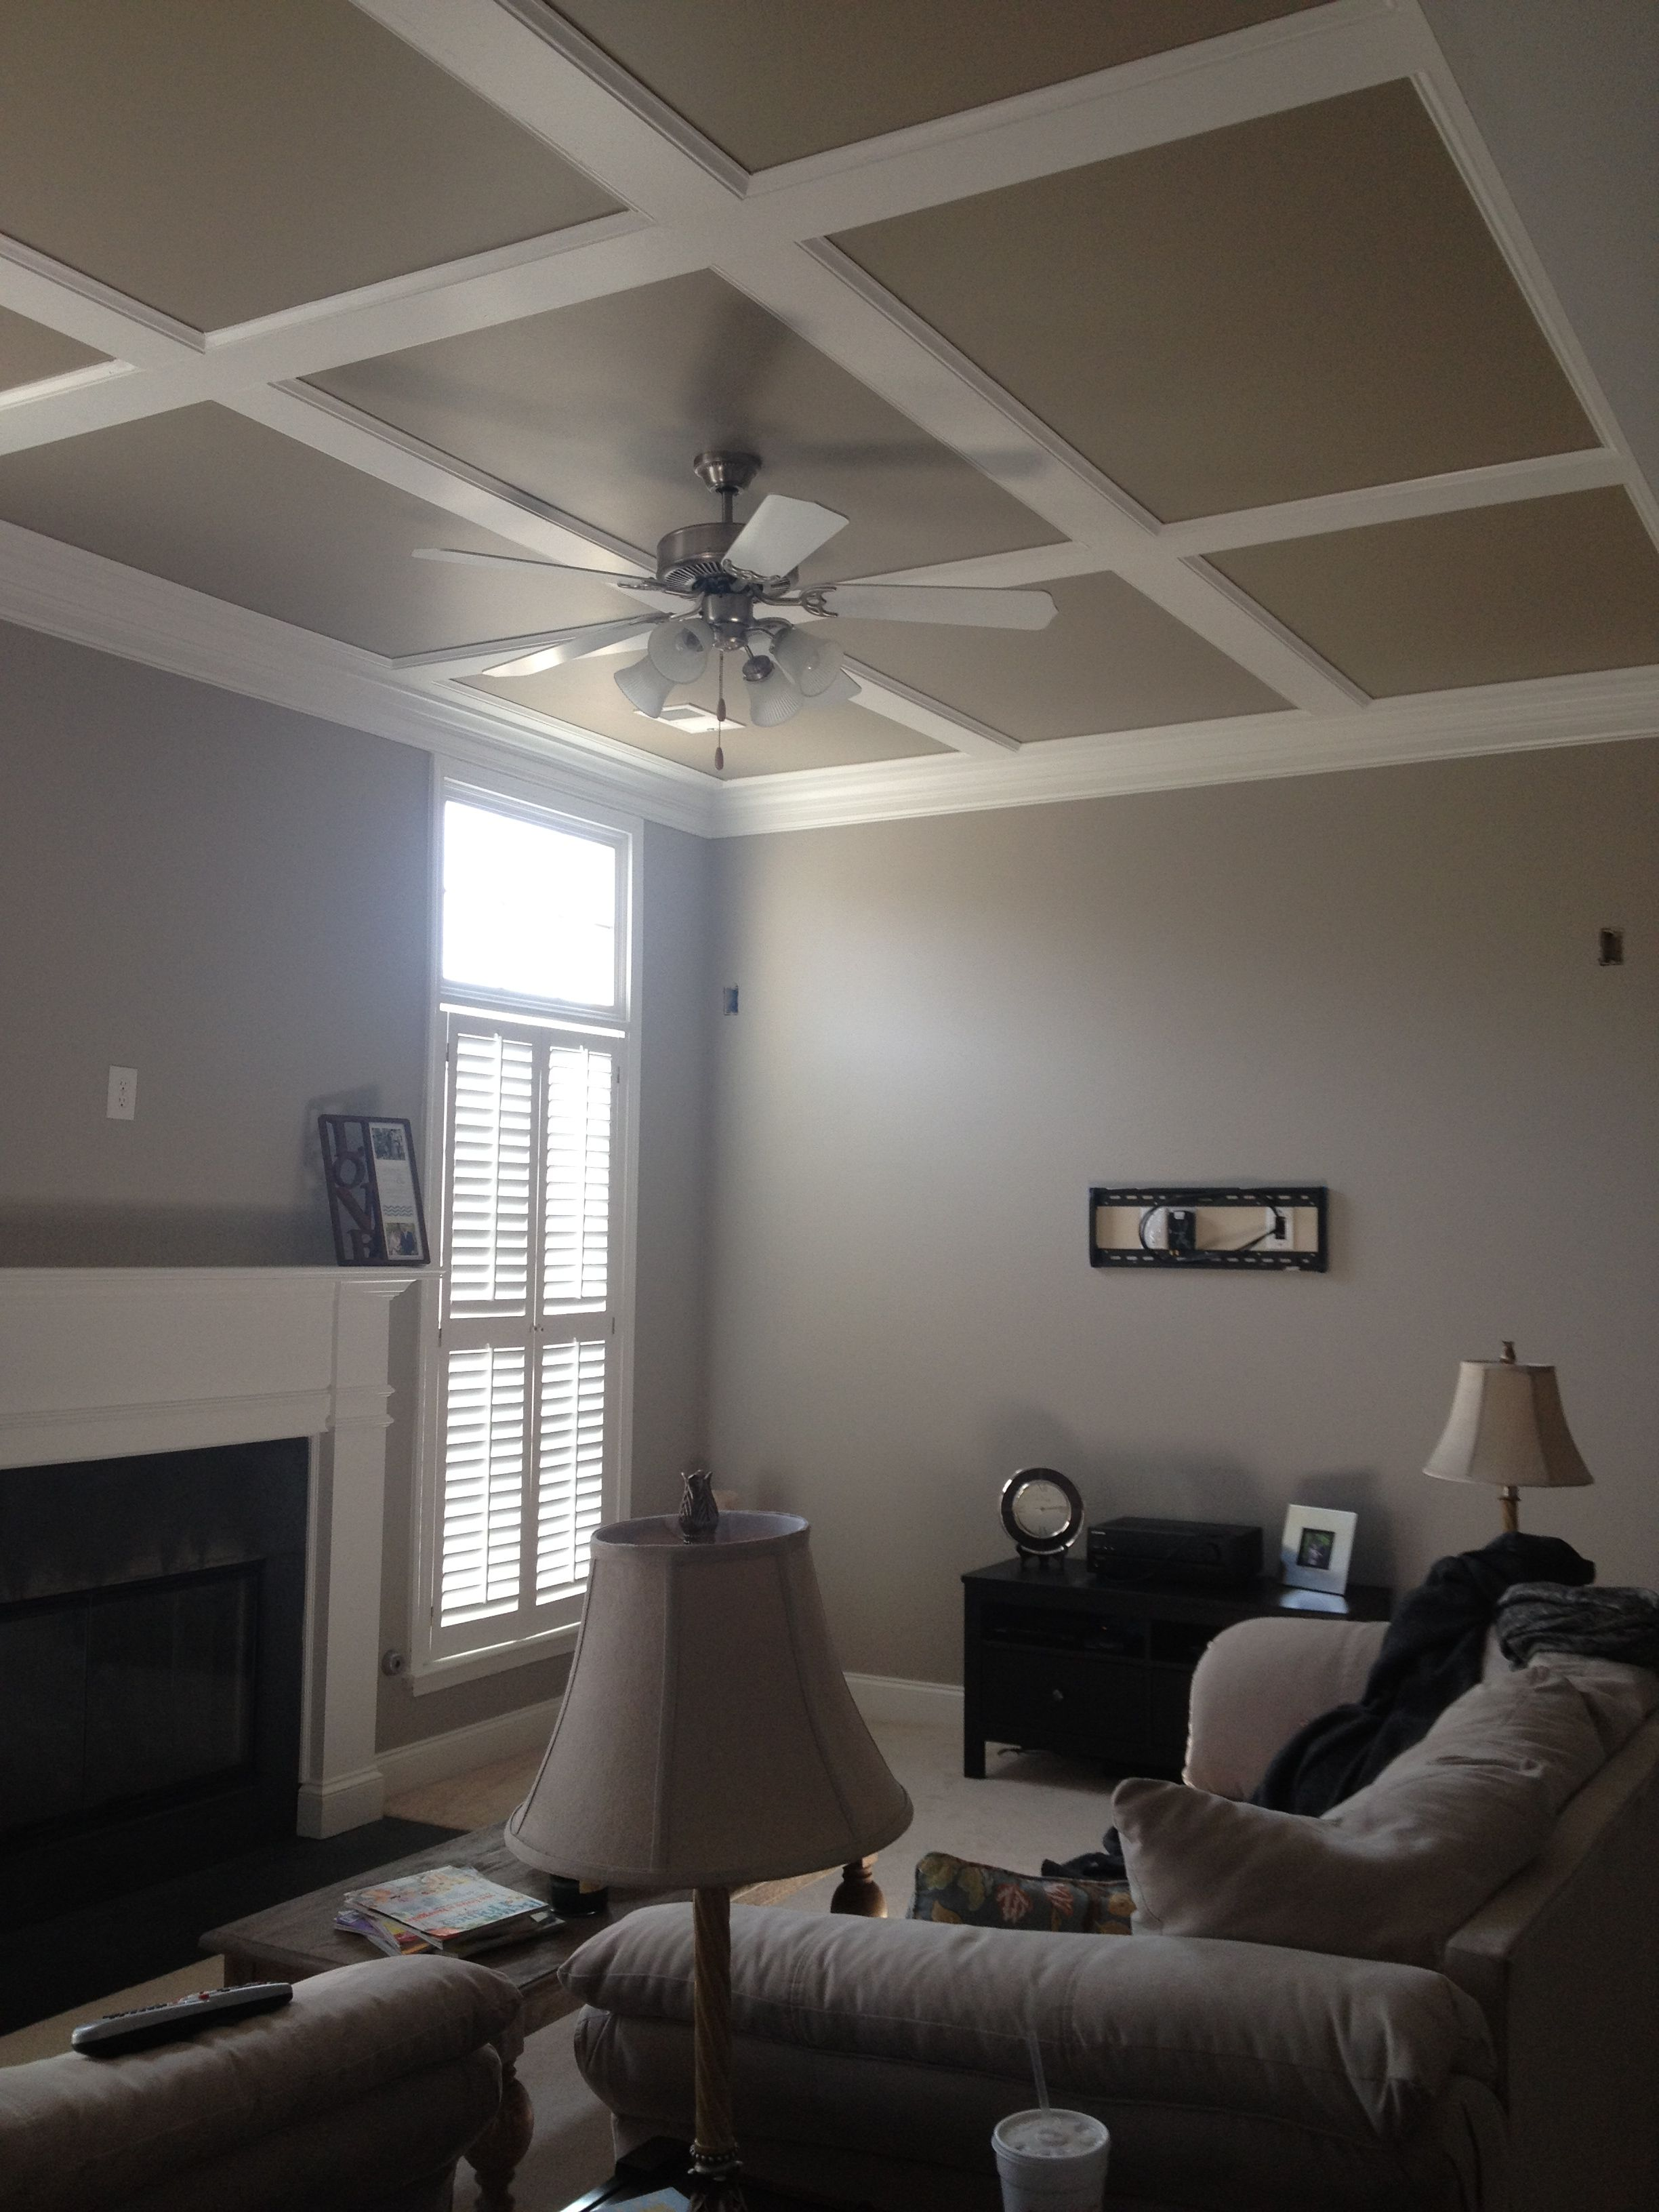 Behr Grey Mist On The Walls And Behr Smoked Tan On The